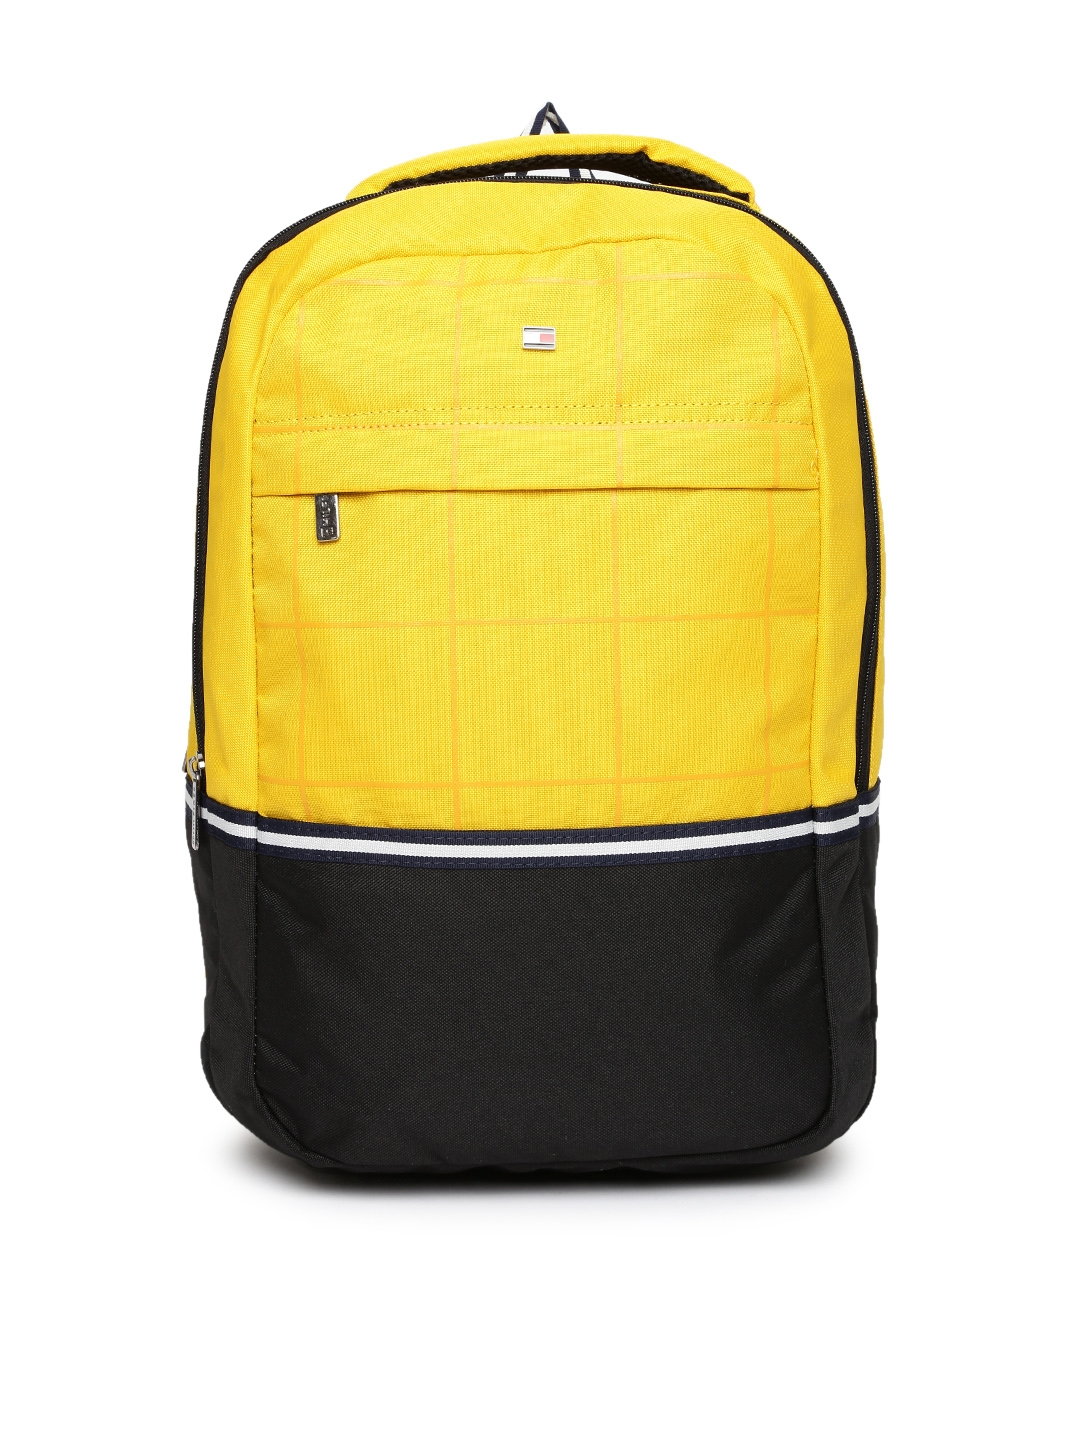 a9b3ef0b2ce Buy Tommy Hilfiger Unisex Yellow & Black Colourblocked Backpack ...